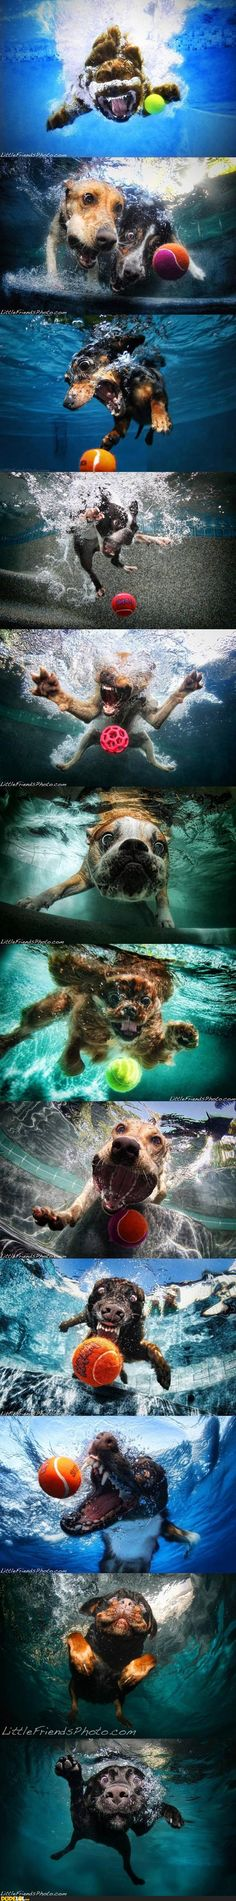 haha so funny! dogs jumping into water chasing a ball action shot!